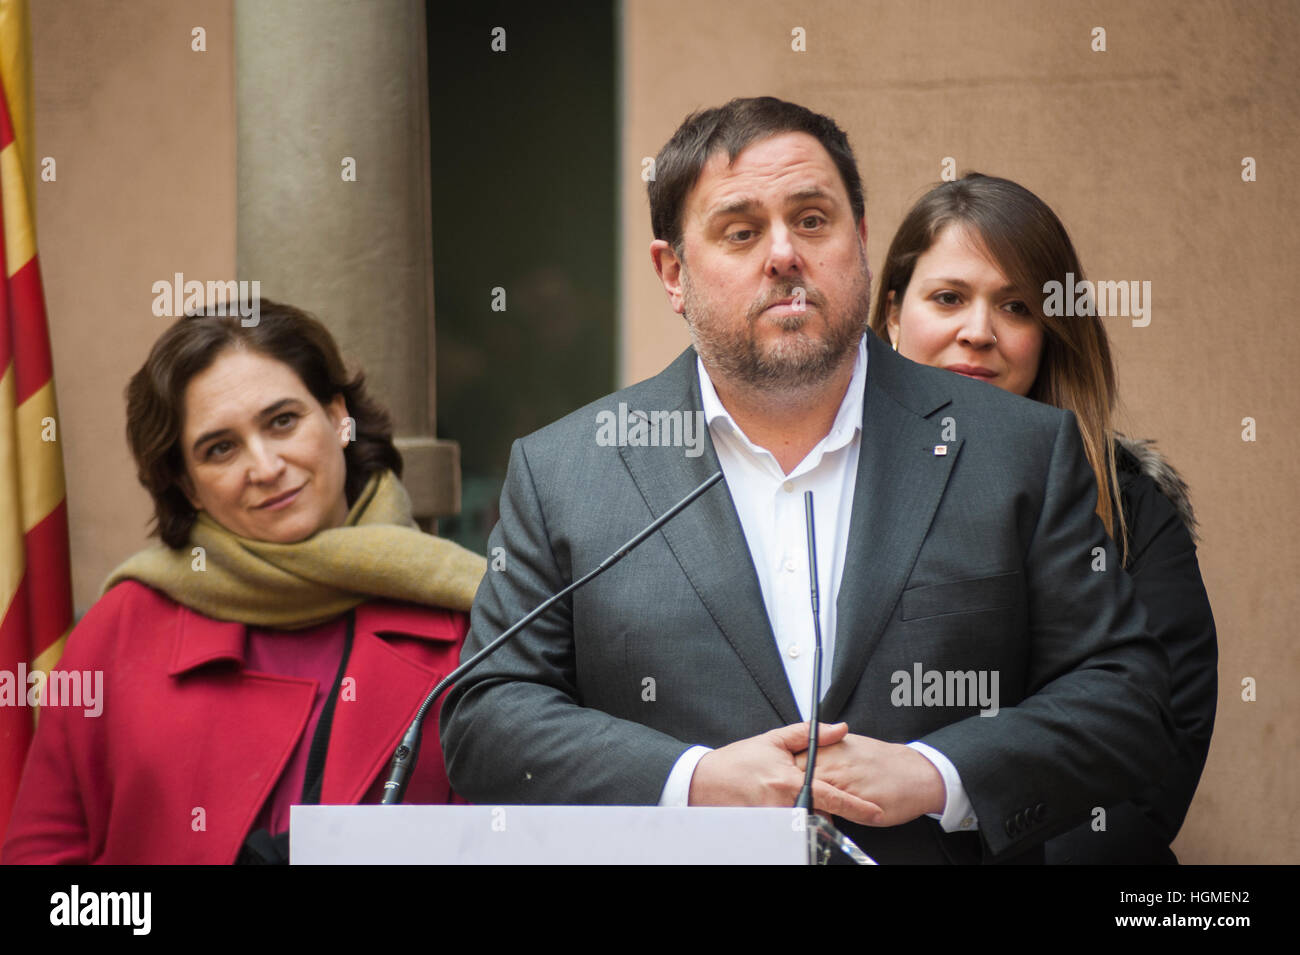 Spain, Barcelona. 10th Jan, 2017. The vice-president of the government, Oriol Junqueras During the press conference - Stock Image